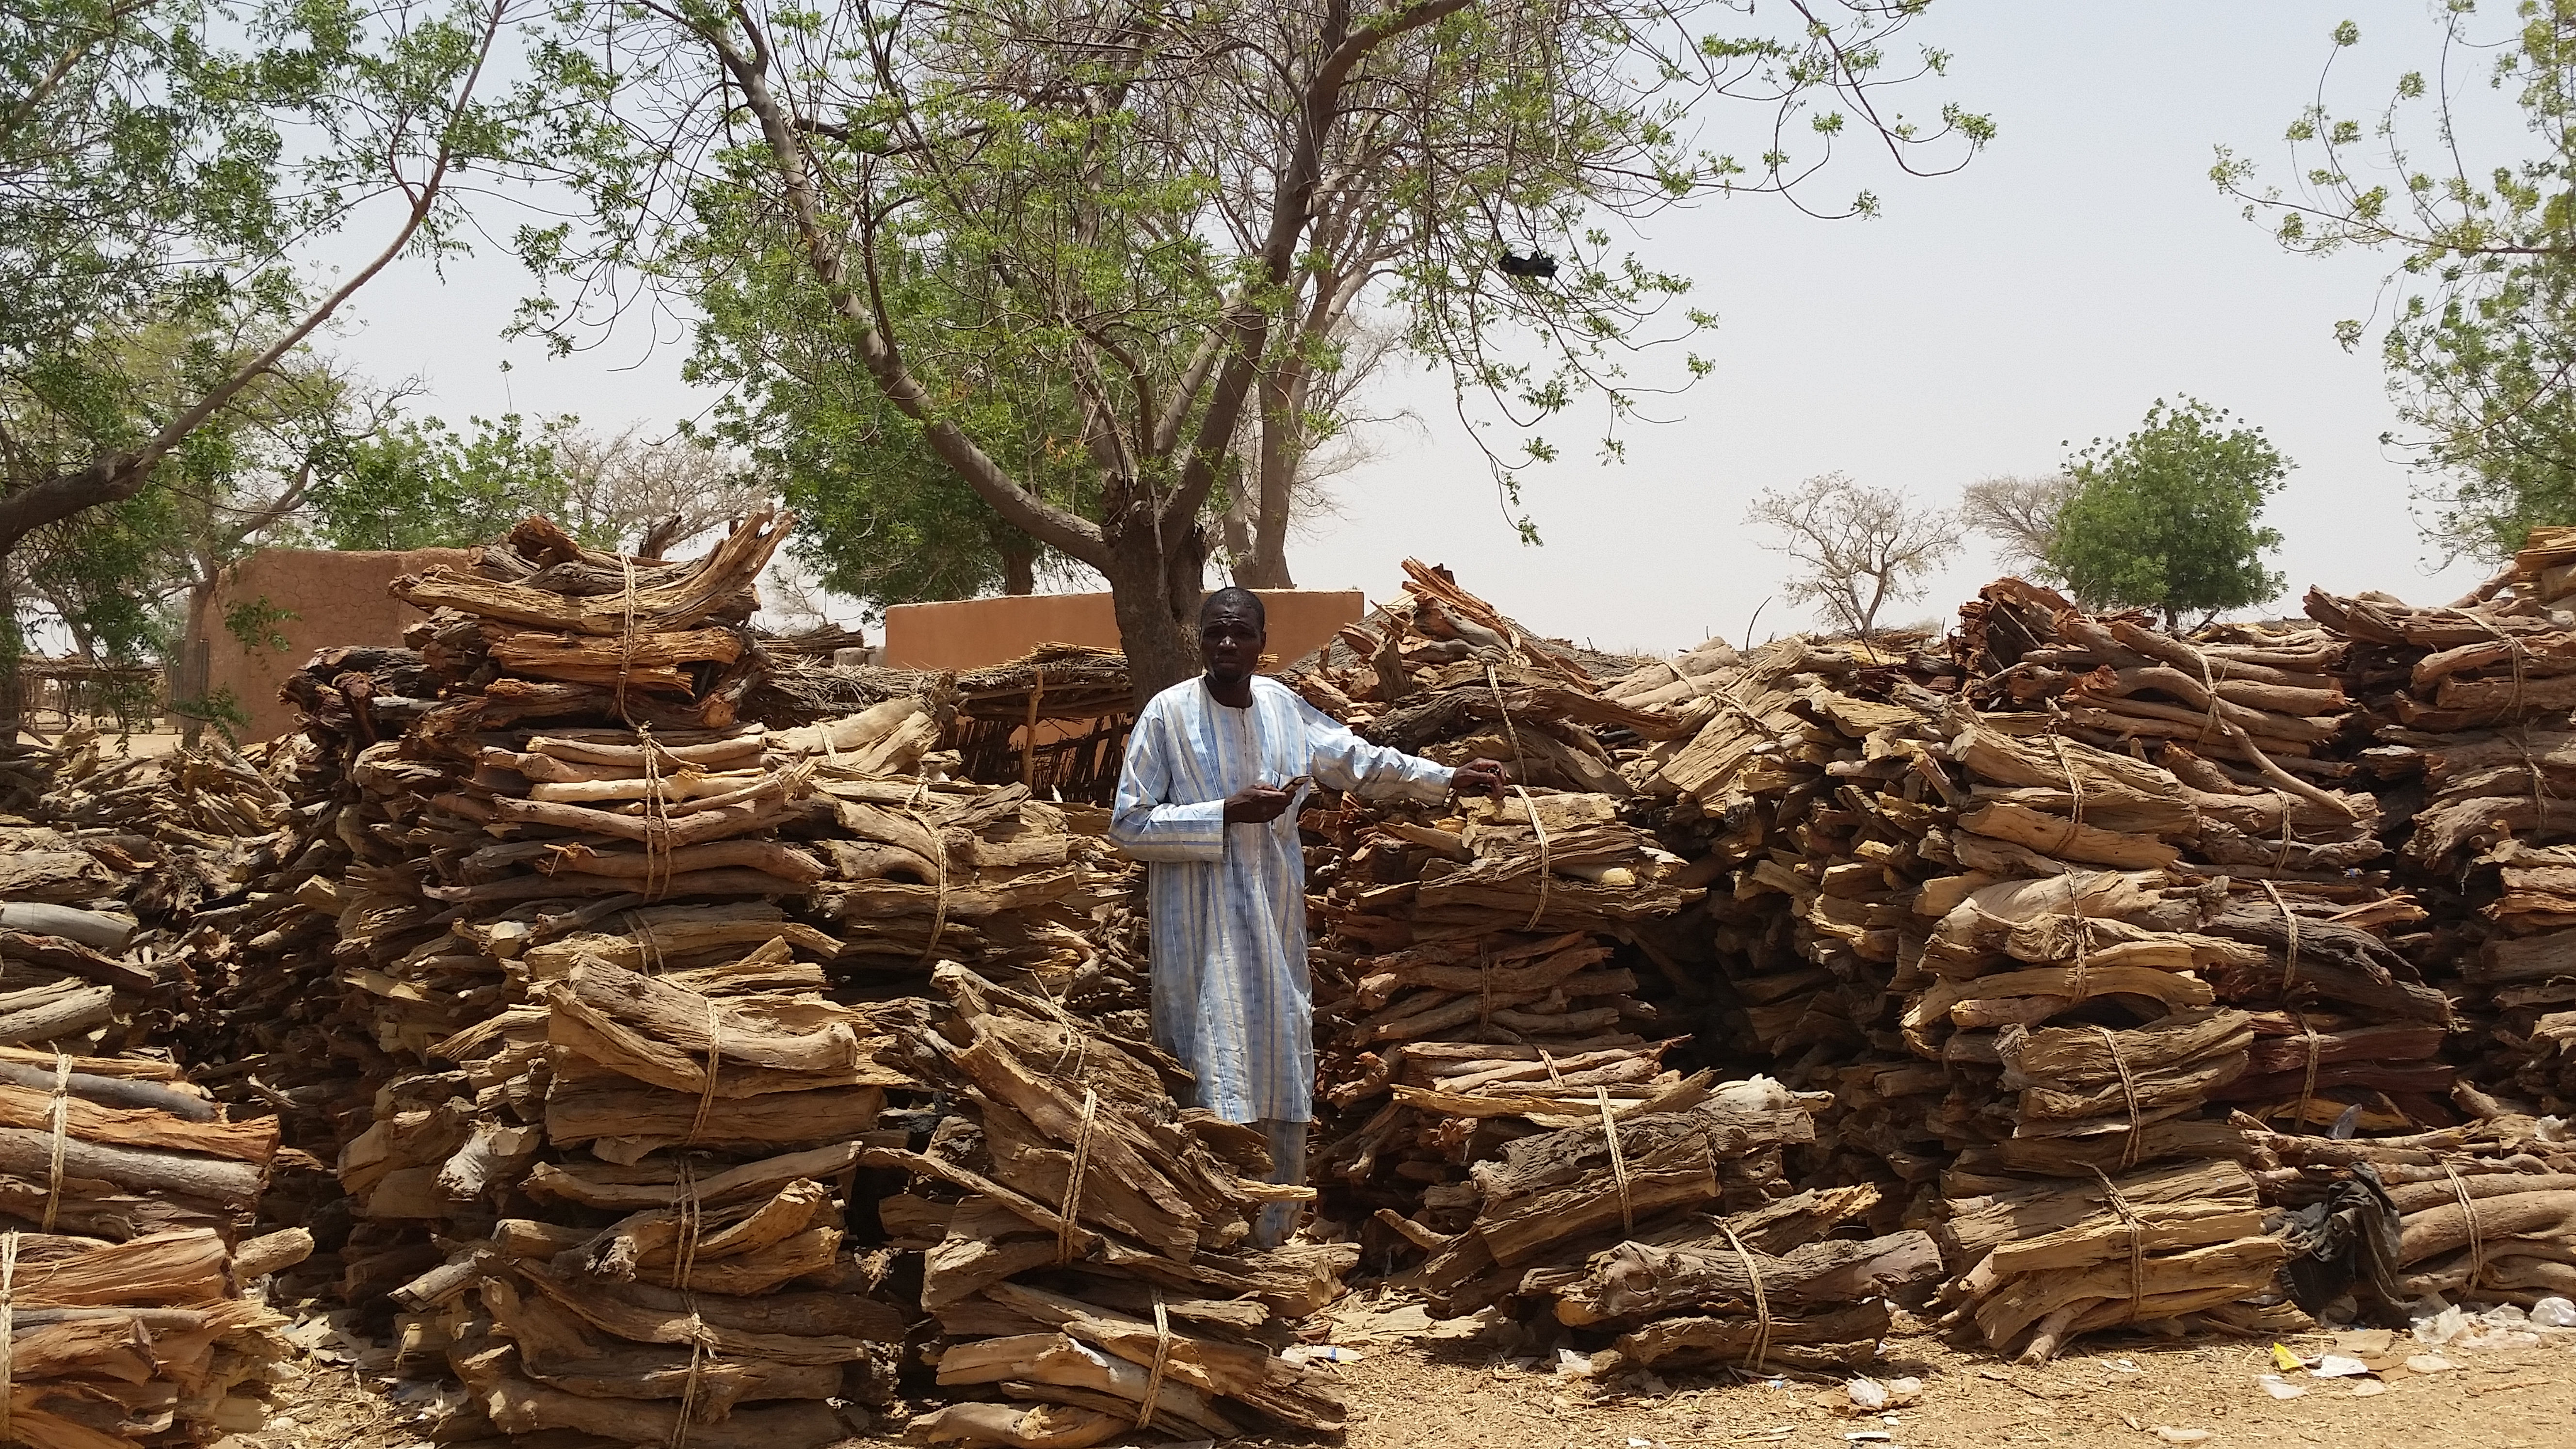 <p>Malam's tree management has been so successful that he now sells trimmings to other villagers. Photo: Salima Mahamoudou</p>